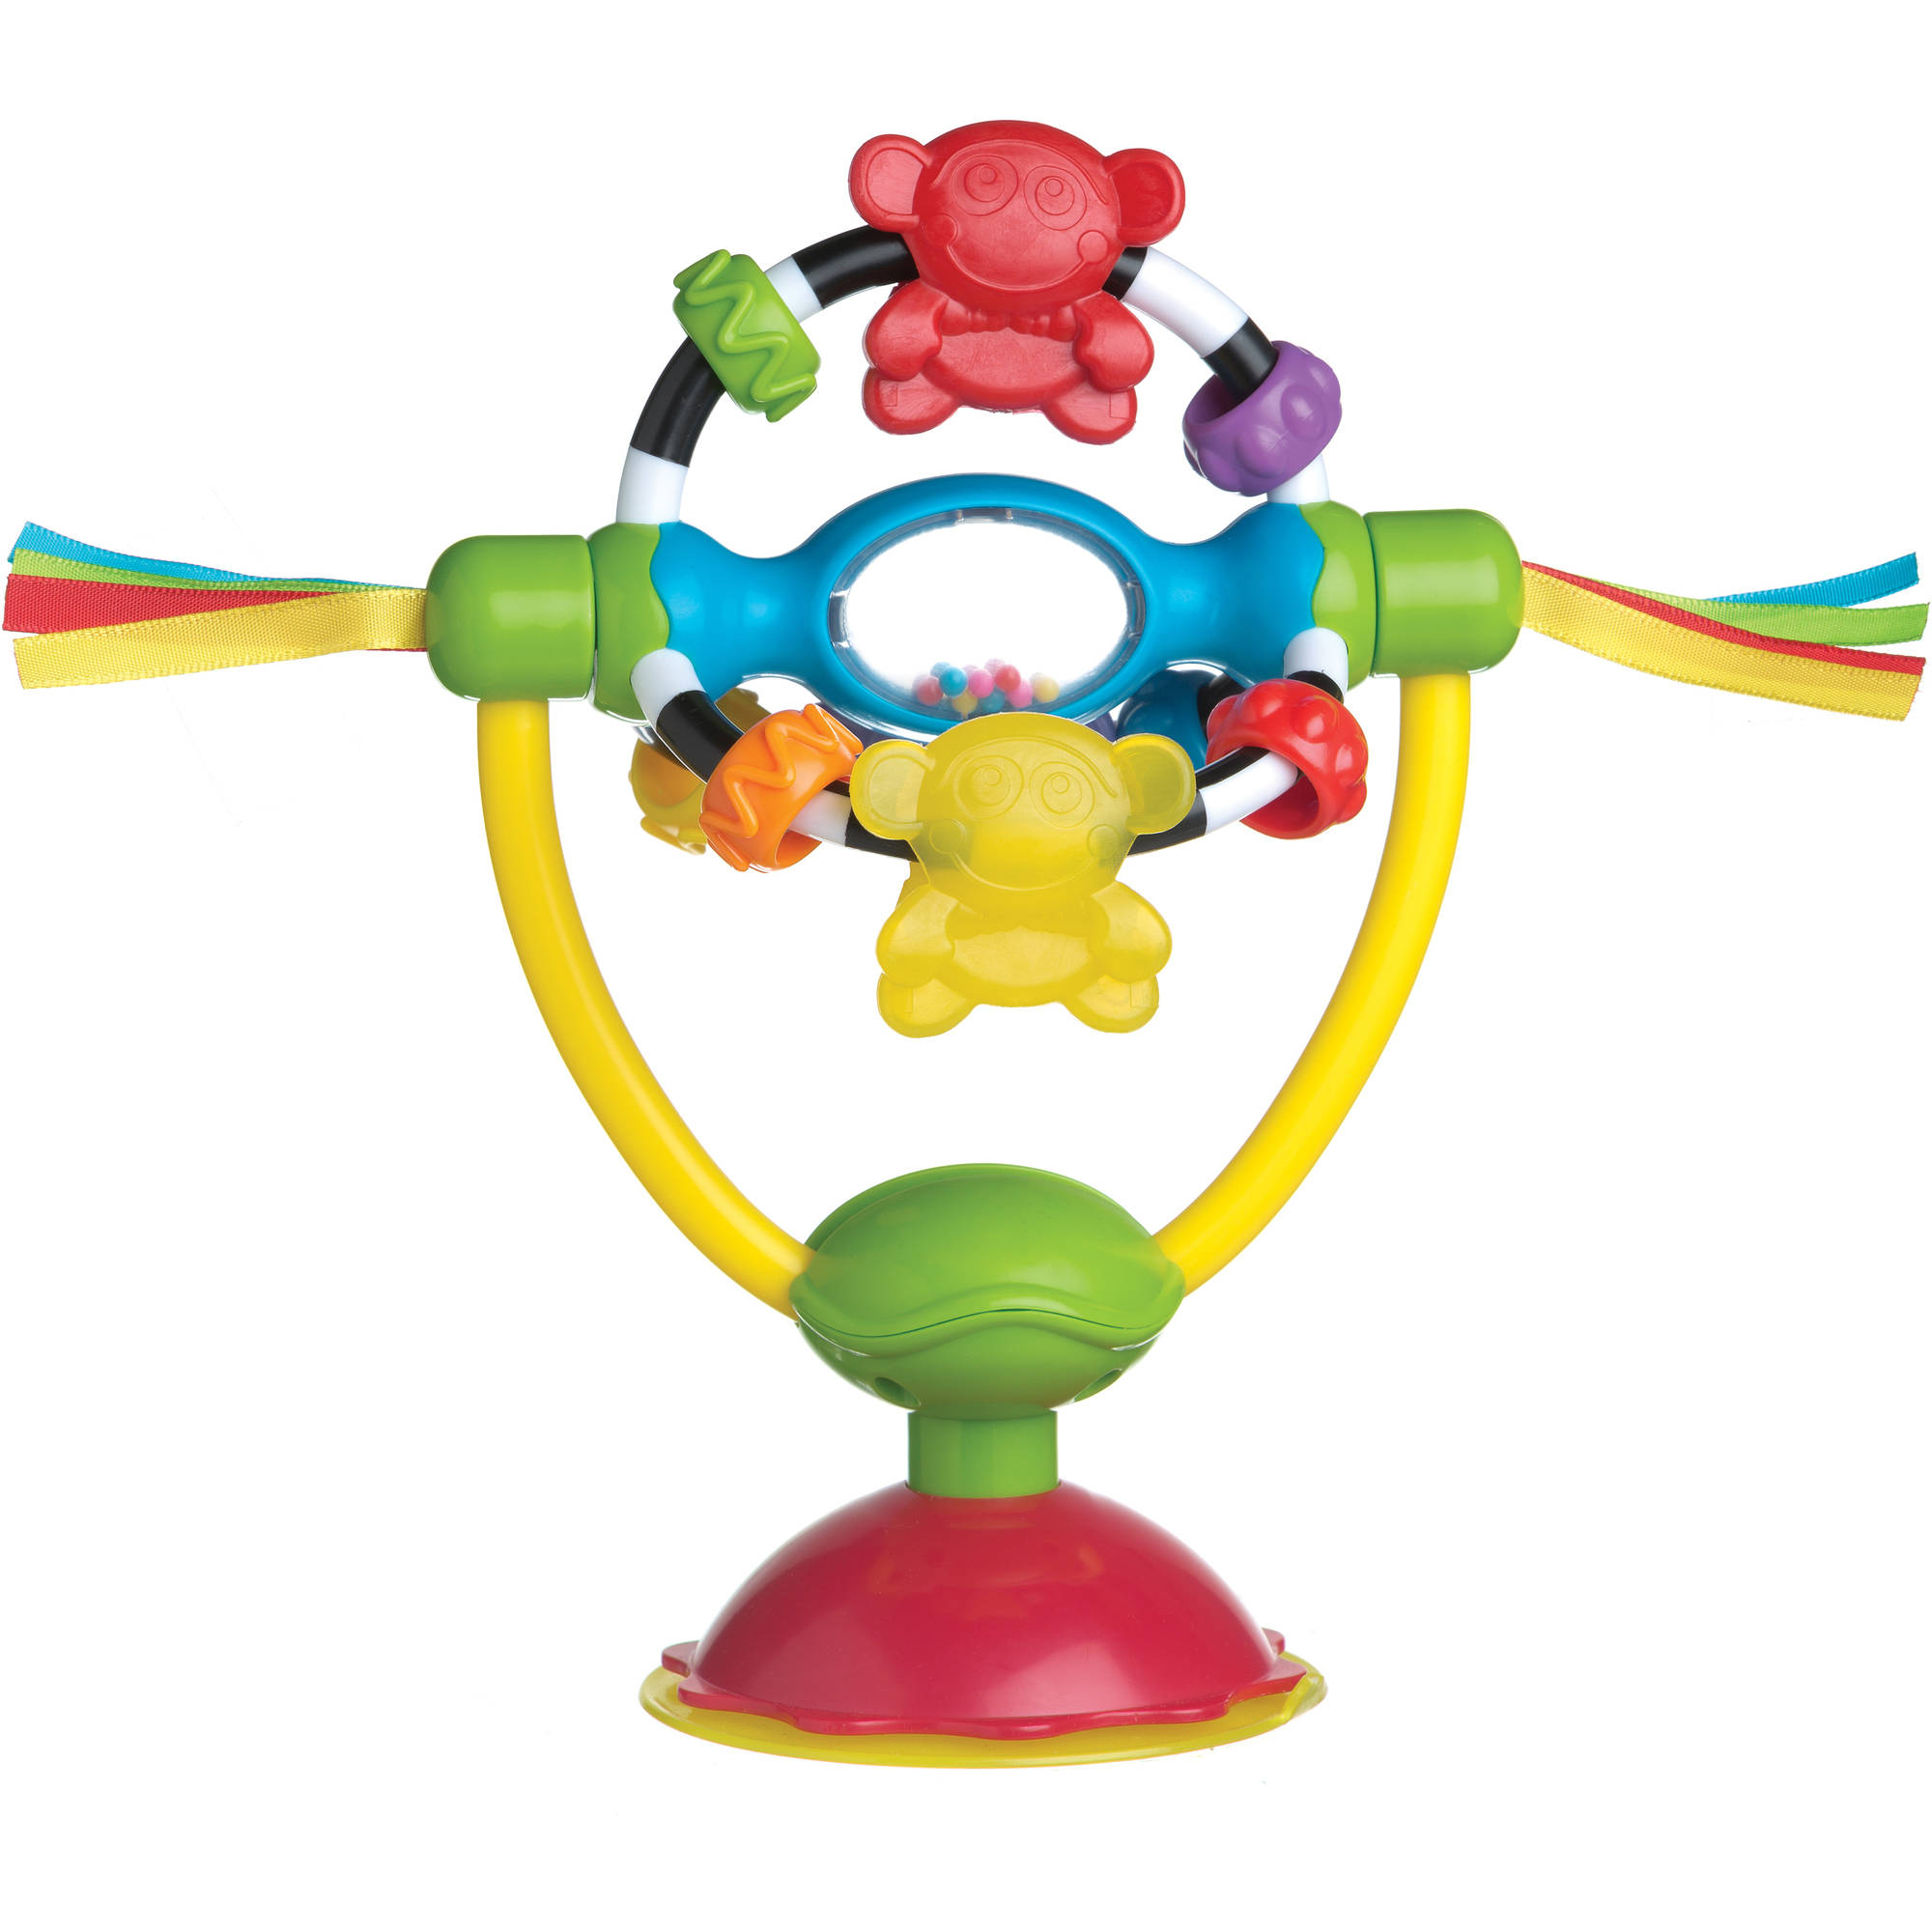 Playgro High Chair Spinning Toy 0182212107 for baby infant toddler